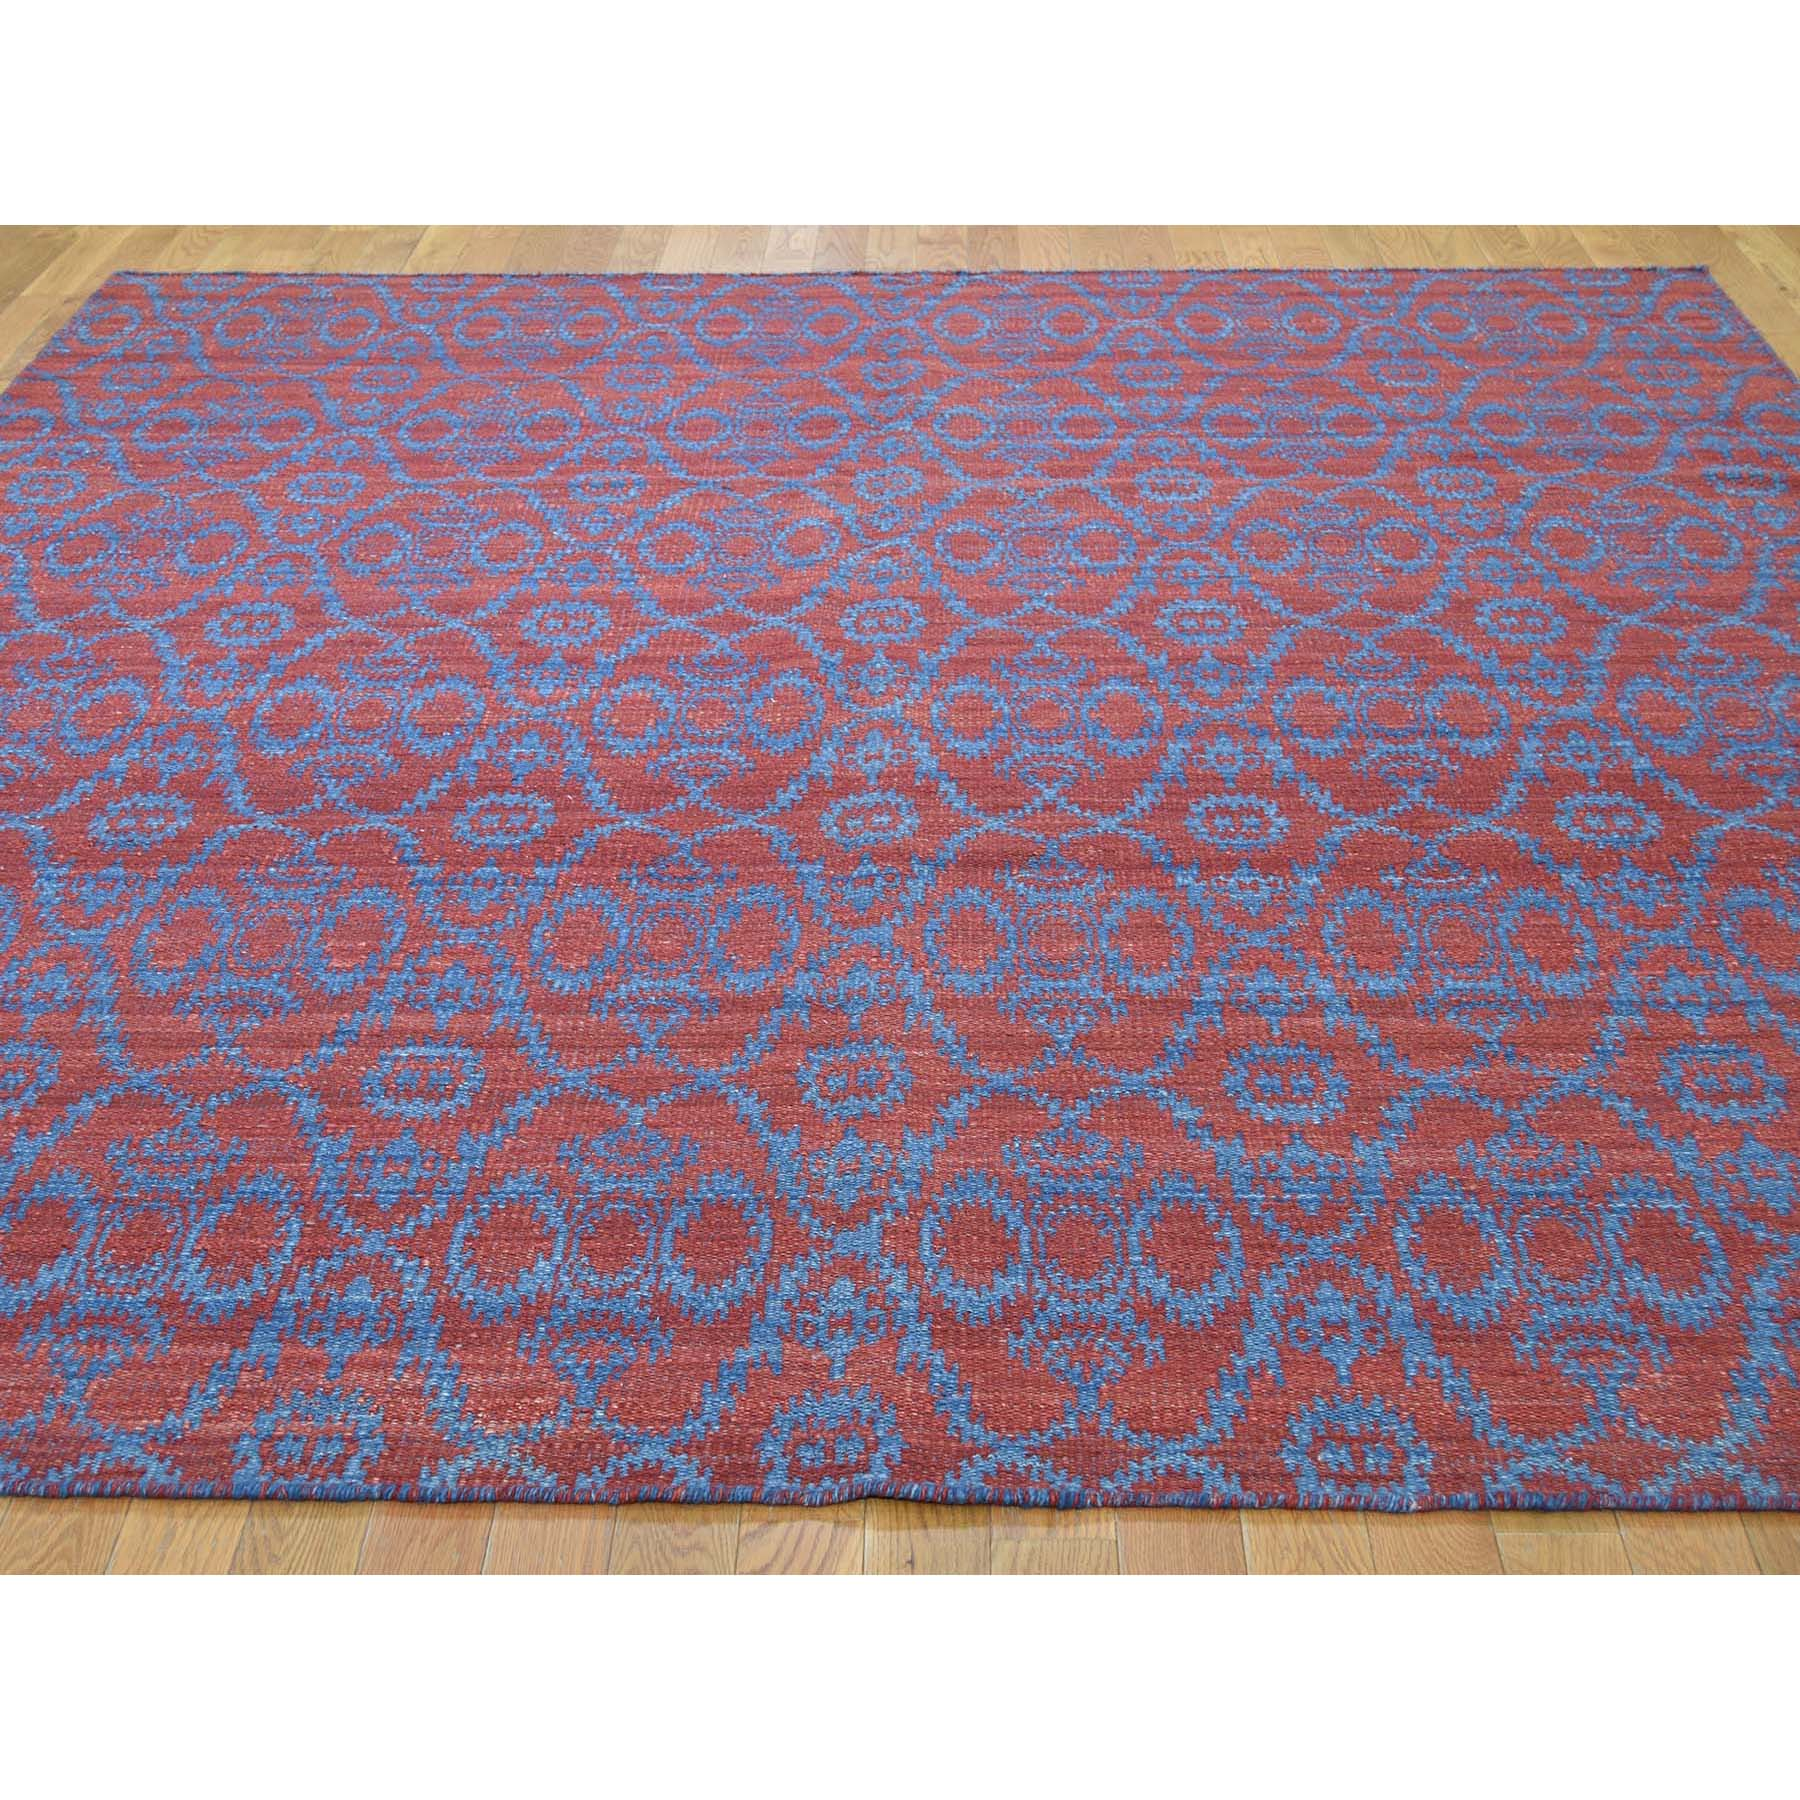 8-4 x9-8  Reversible Hand Woven Flat Weave Durie Kilim Oriental Rug